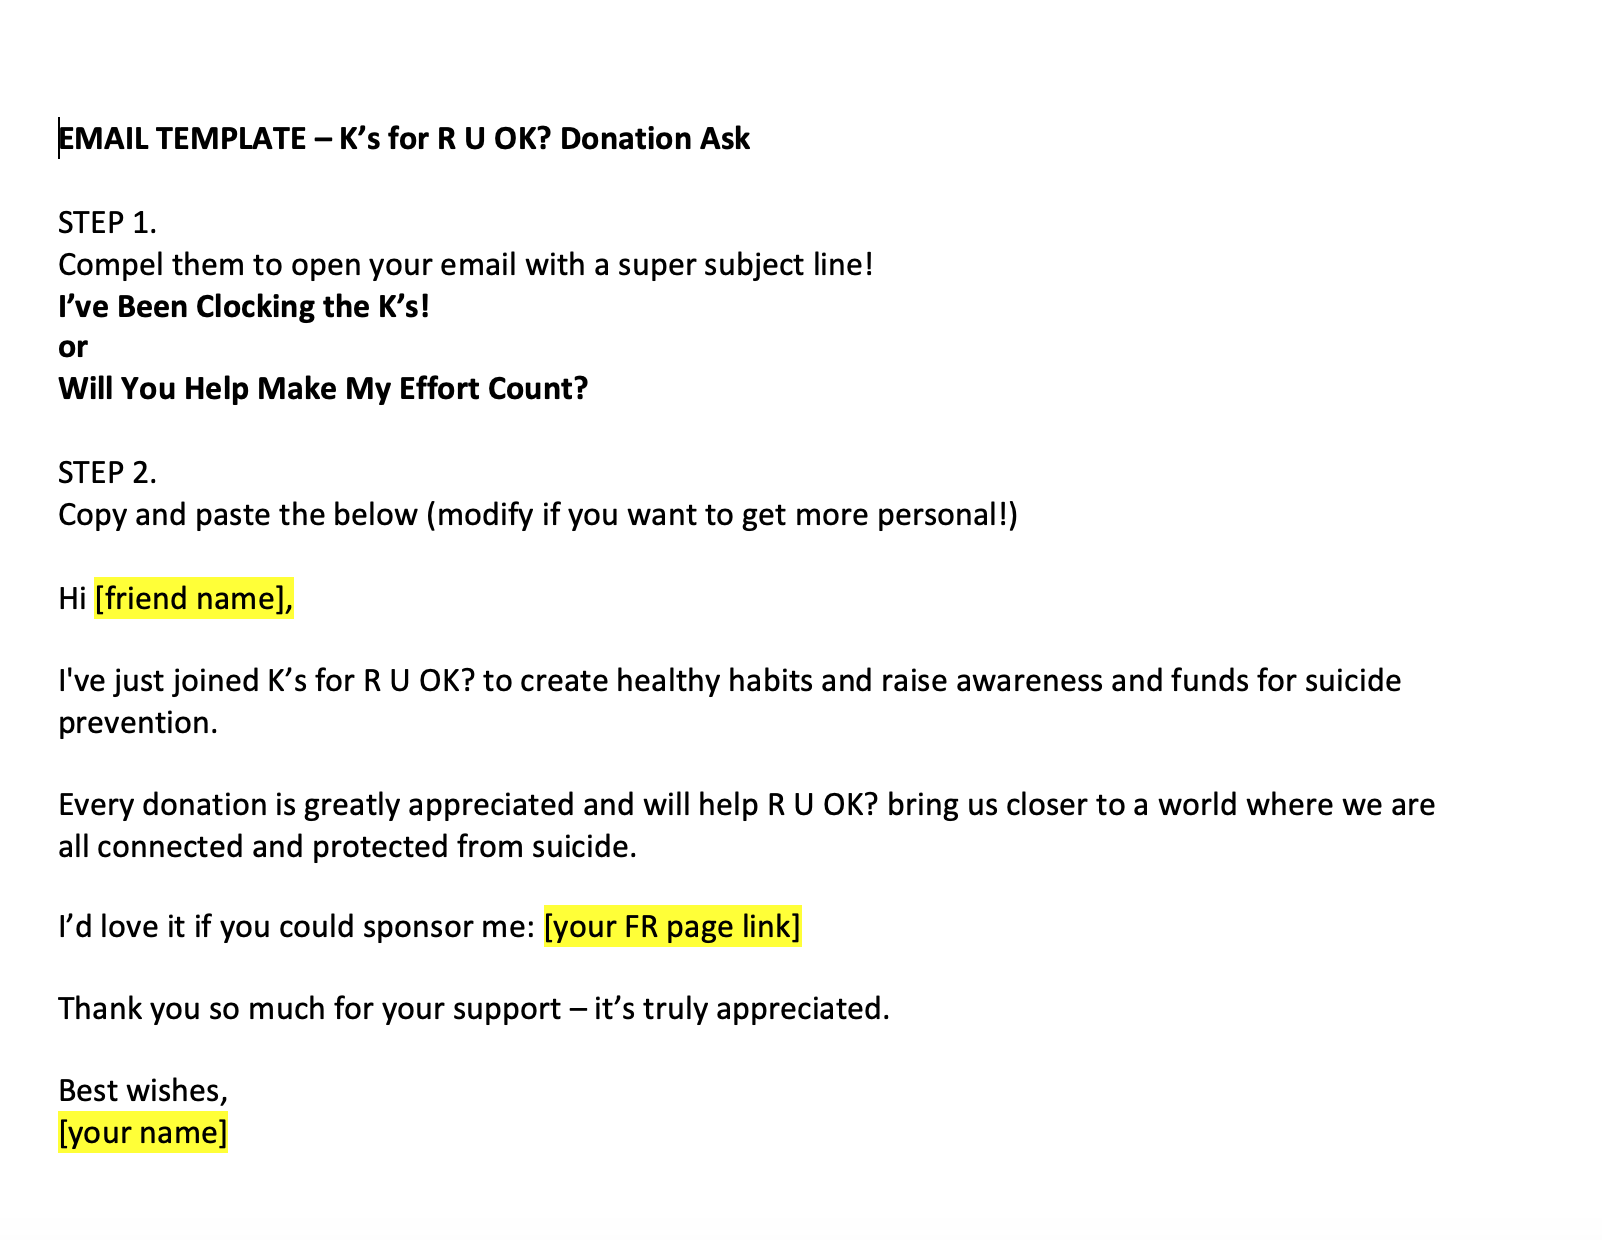 Email Template - Donation Ask